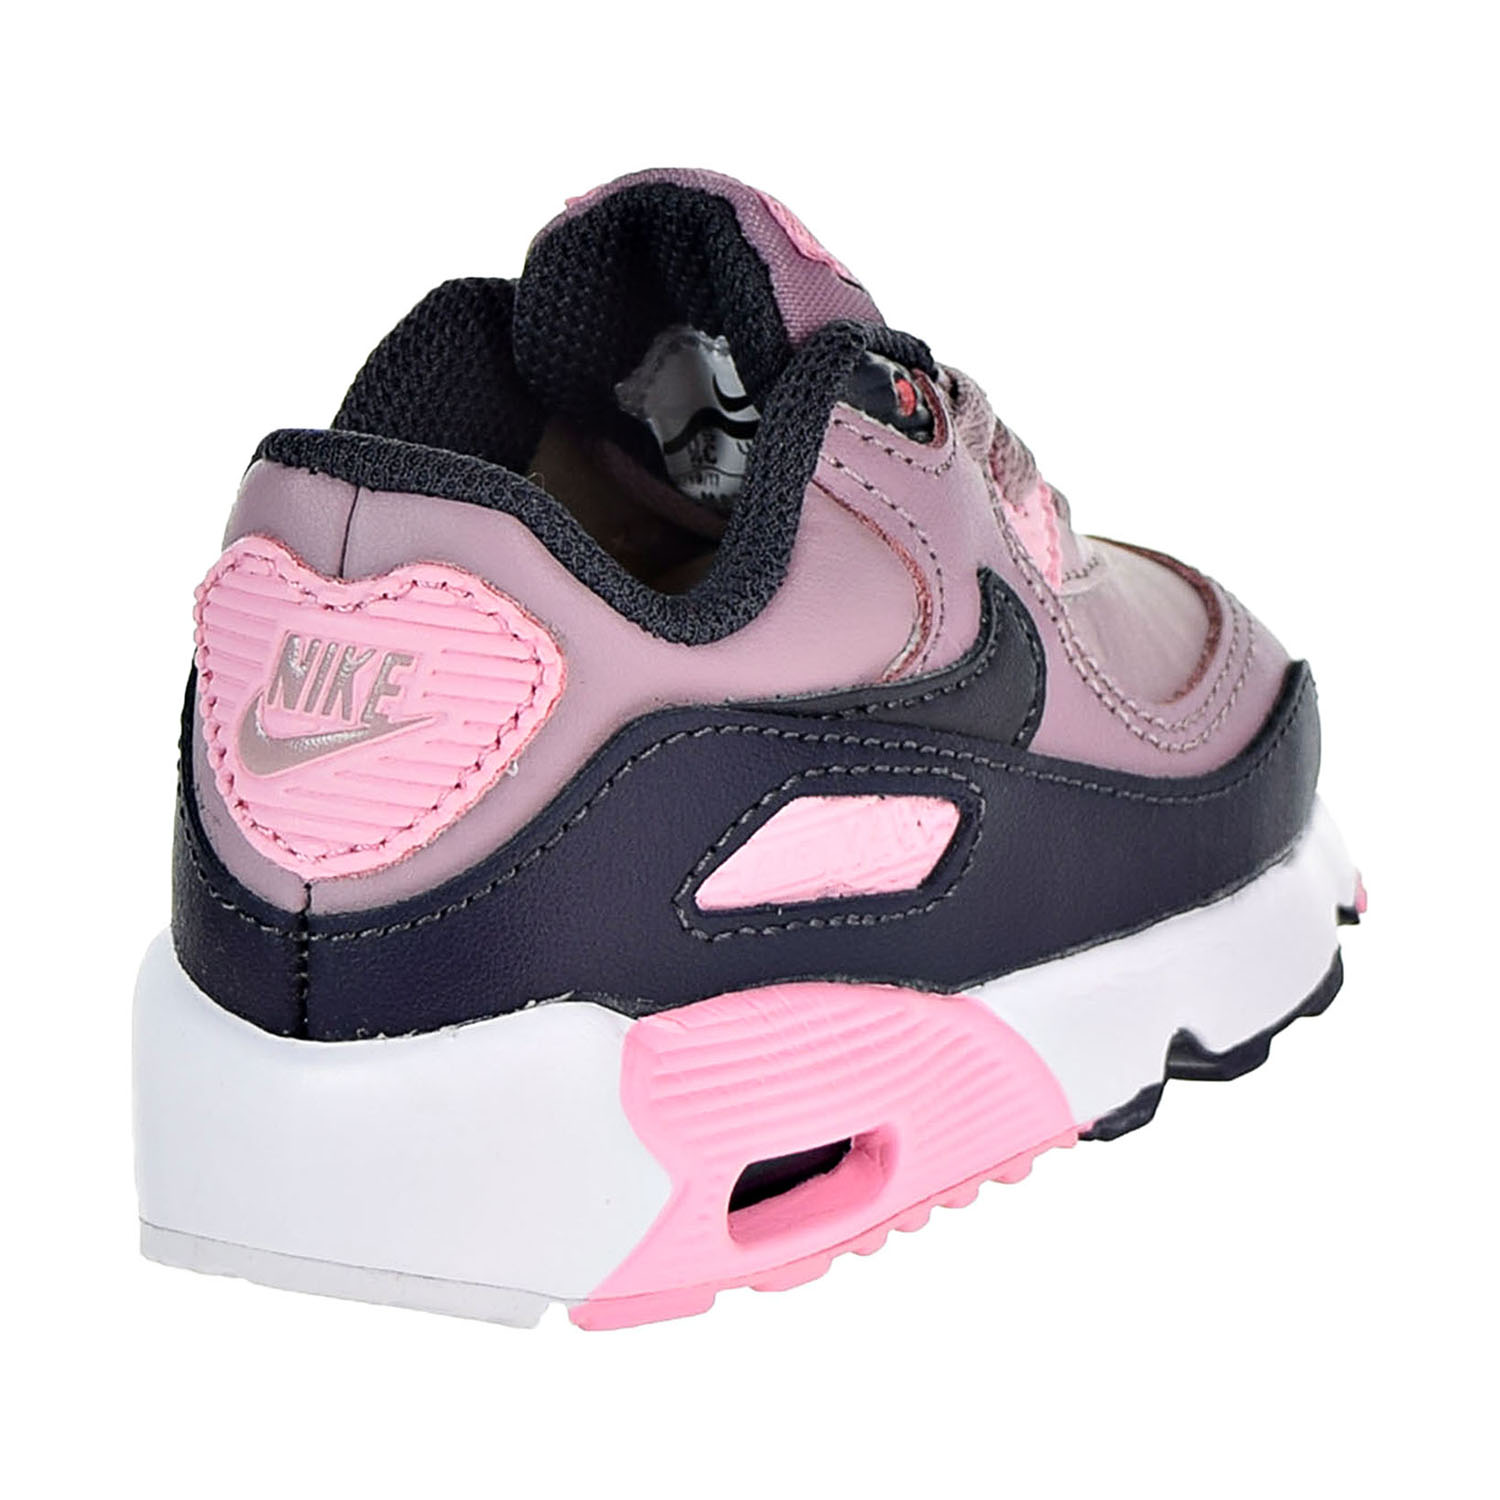 6a37a6e29e Nike Air Max 90 Leather Toddler's Shoes Elemental Rose 833379-602 | eBay